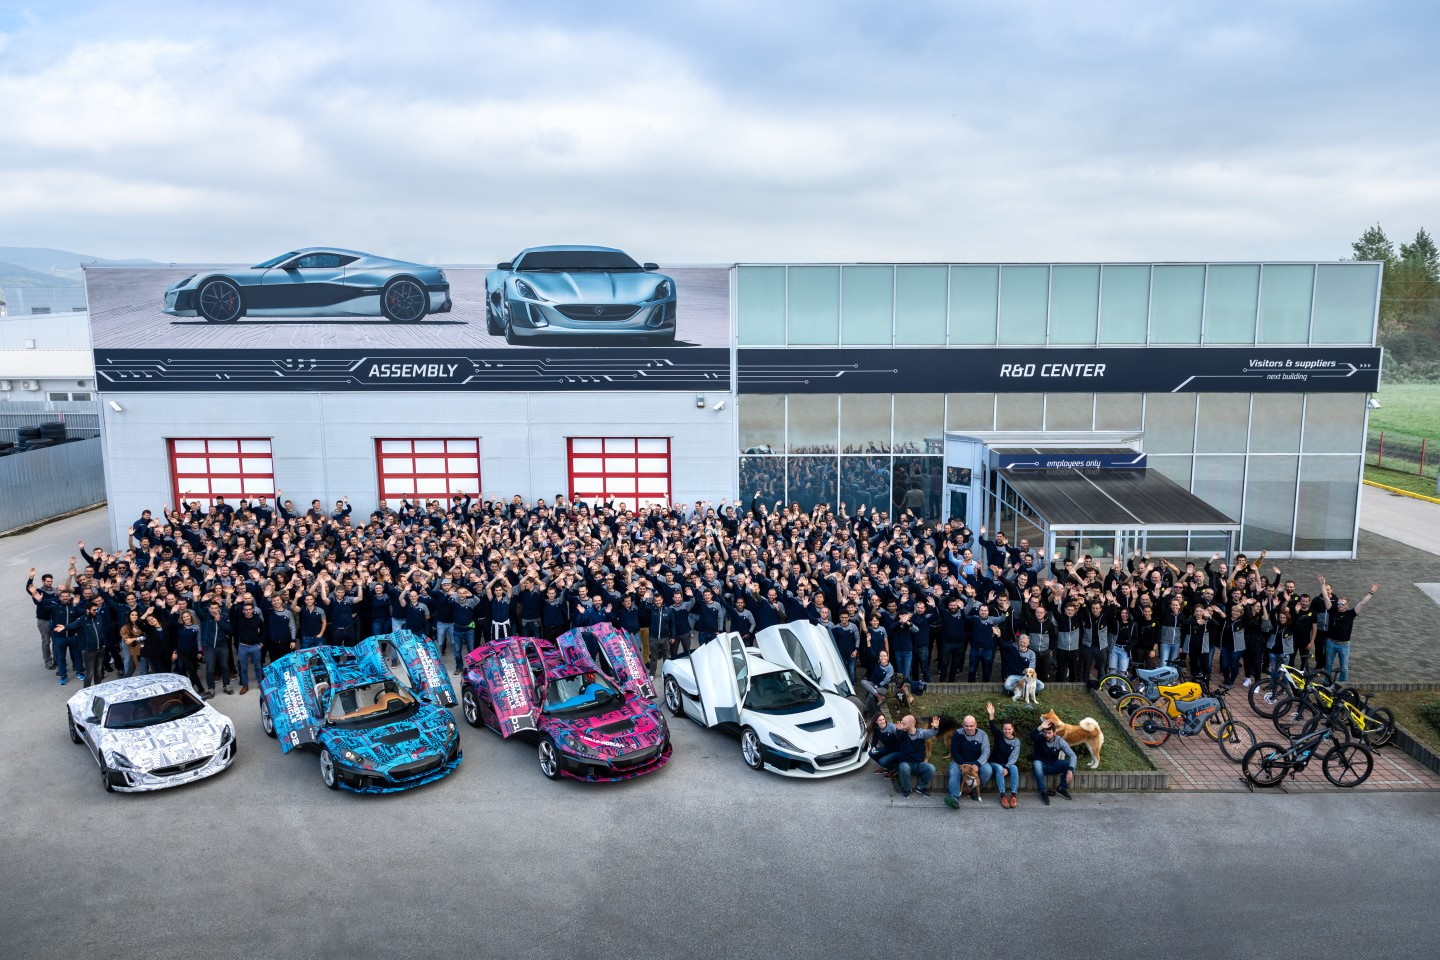 In ten years, Rimac has grown to be a 750-strong company